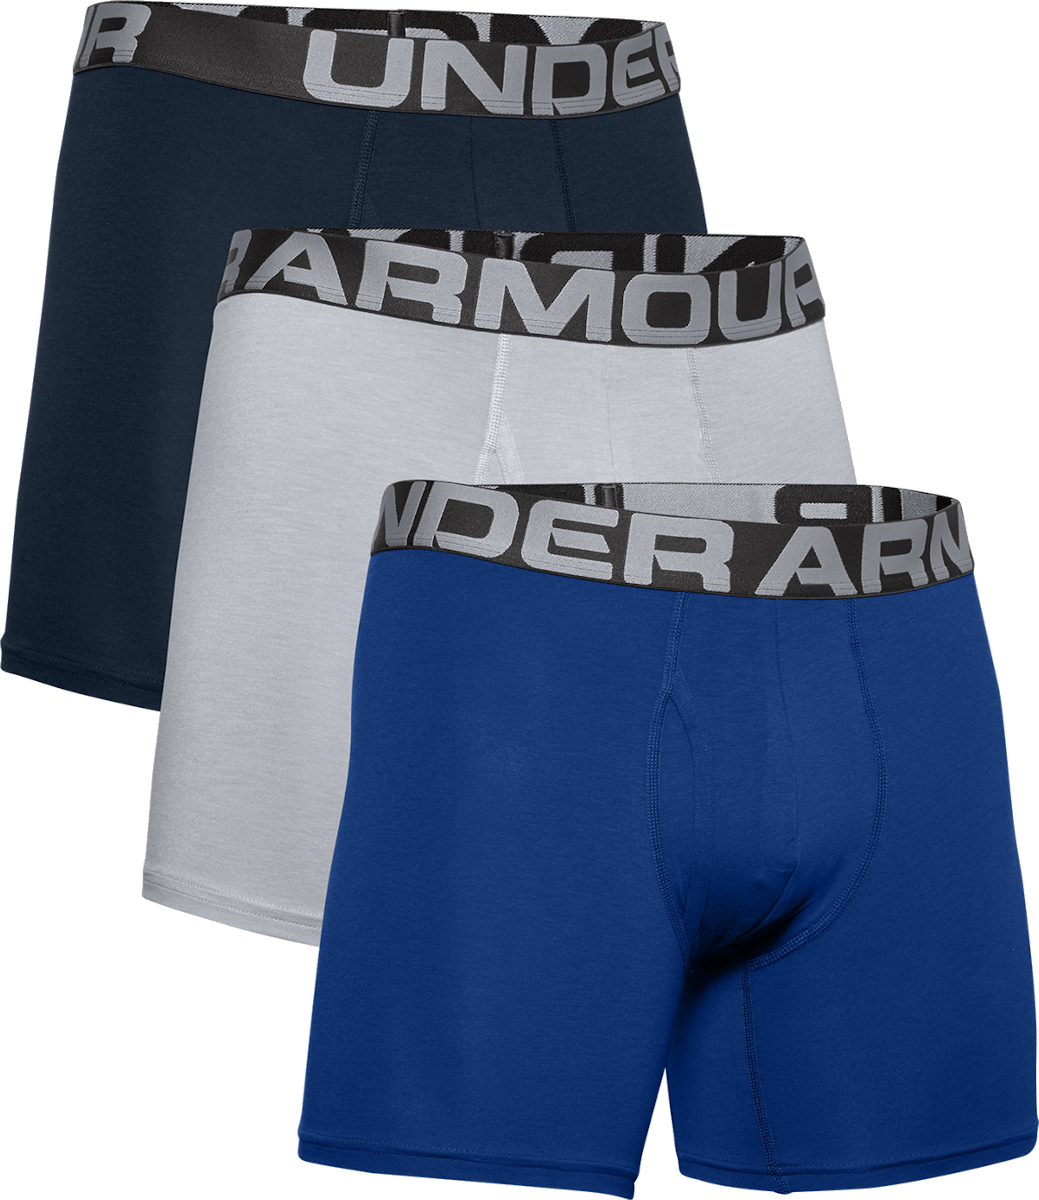 Imperio Supervisar bosquejo  Calzoncillos bóxer Under Armour Charged Boxer 6in 3er Pack - Top4Football.es